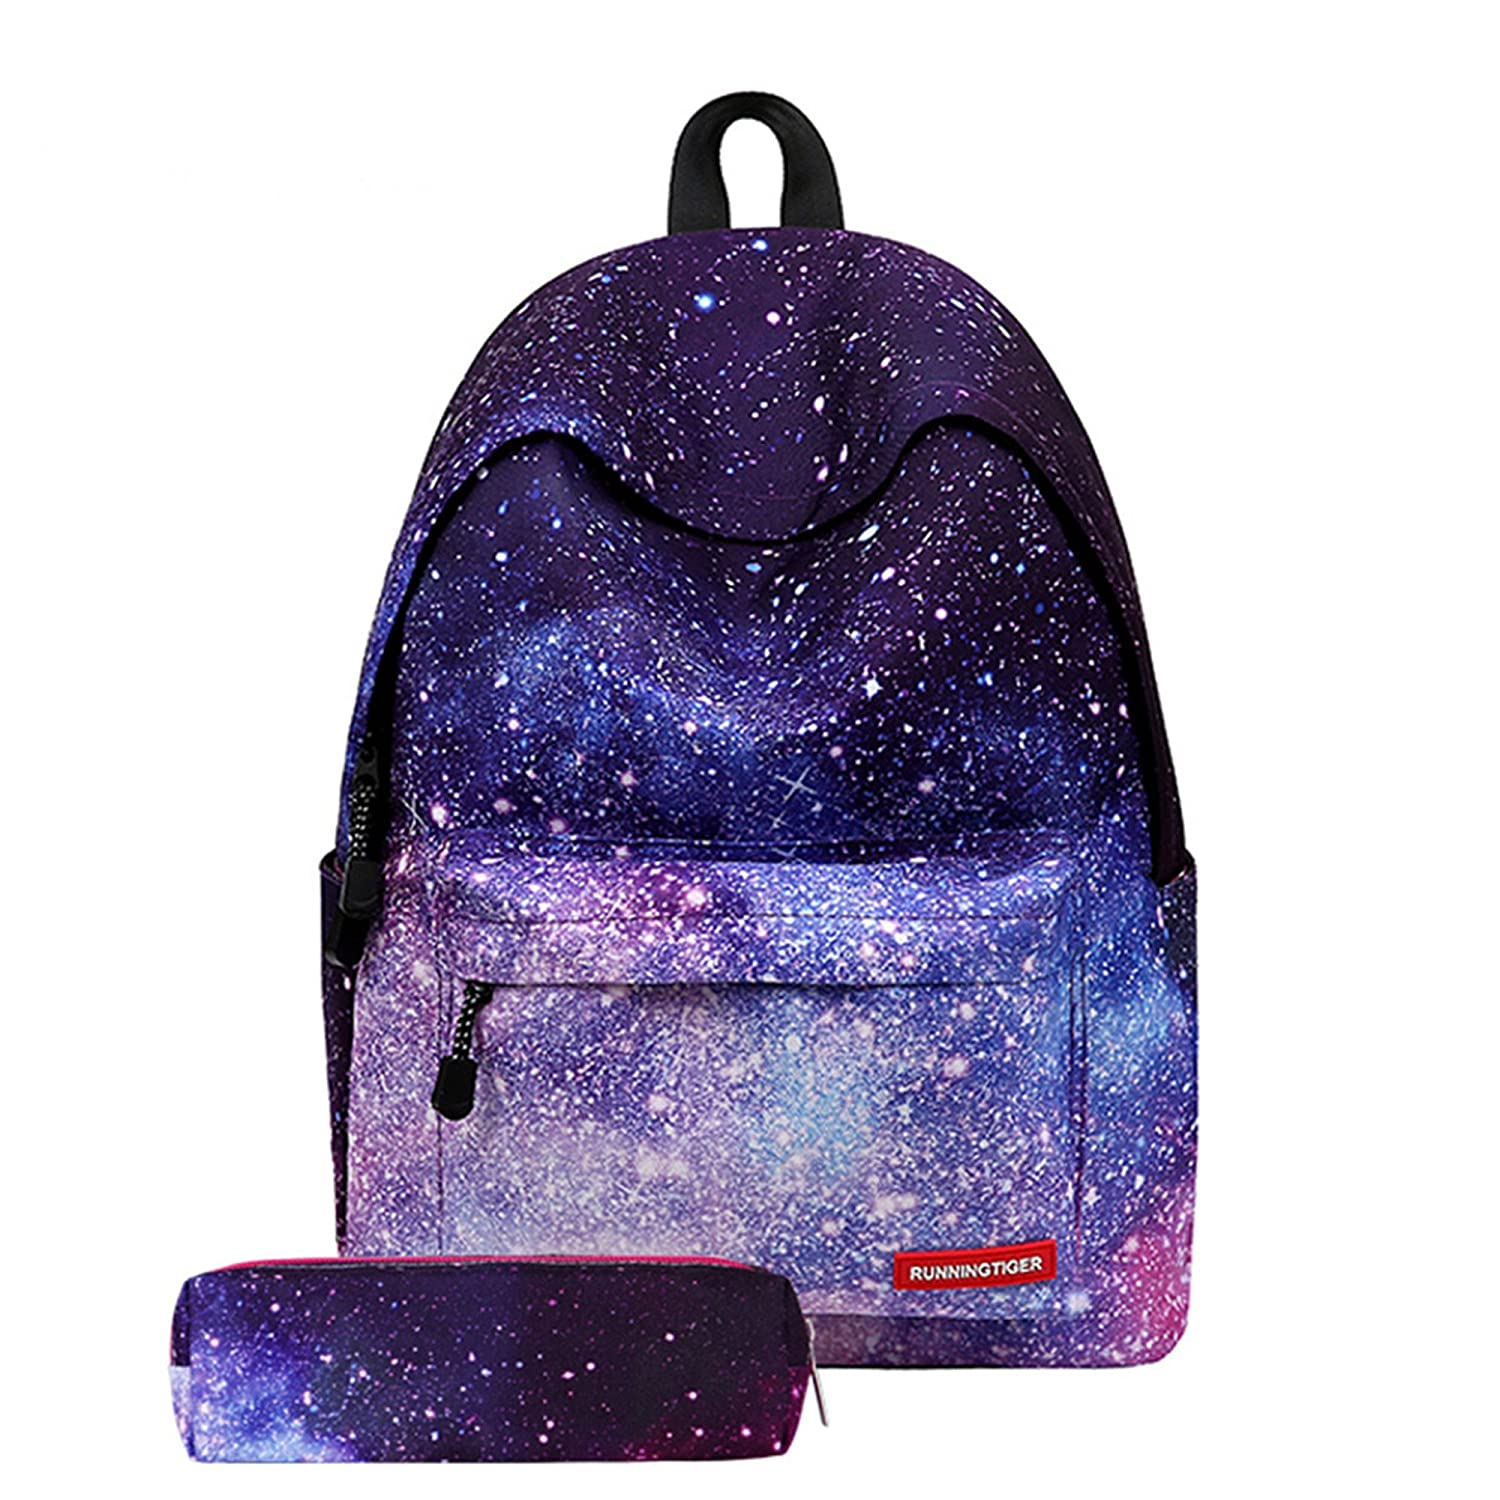 Running tiger New unique print girl's backpack(school bag) (Starry sky, offer with a pen bag) new